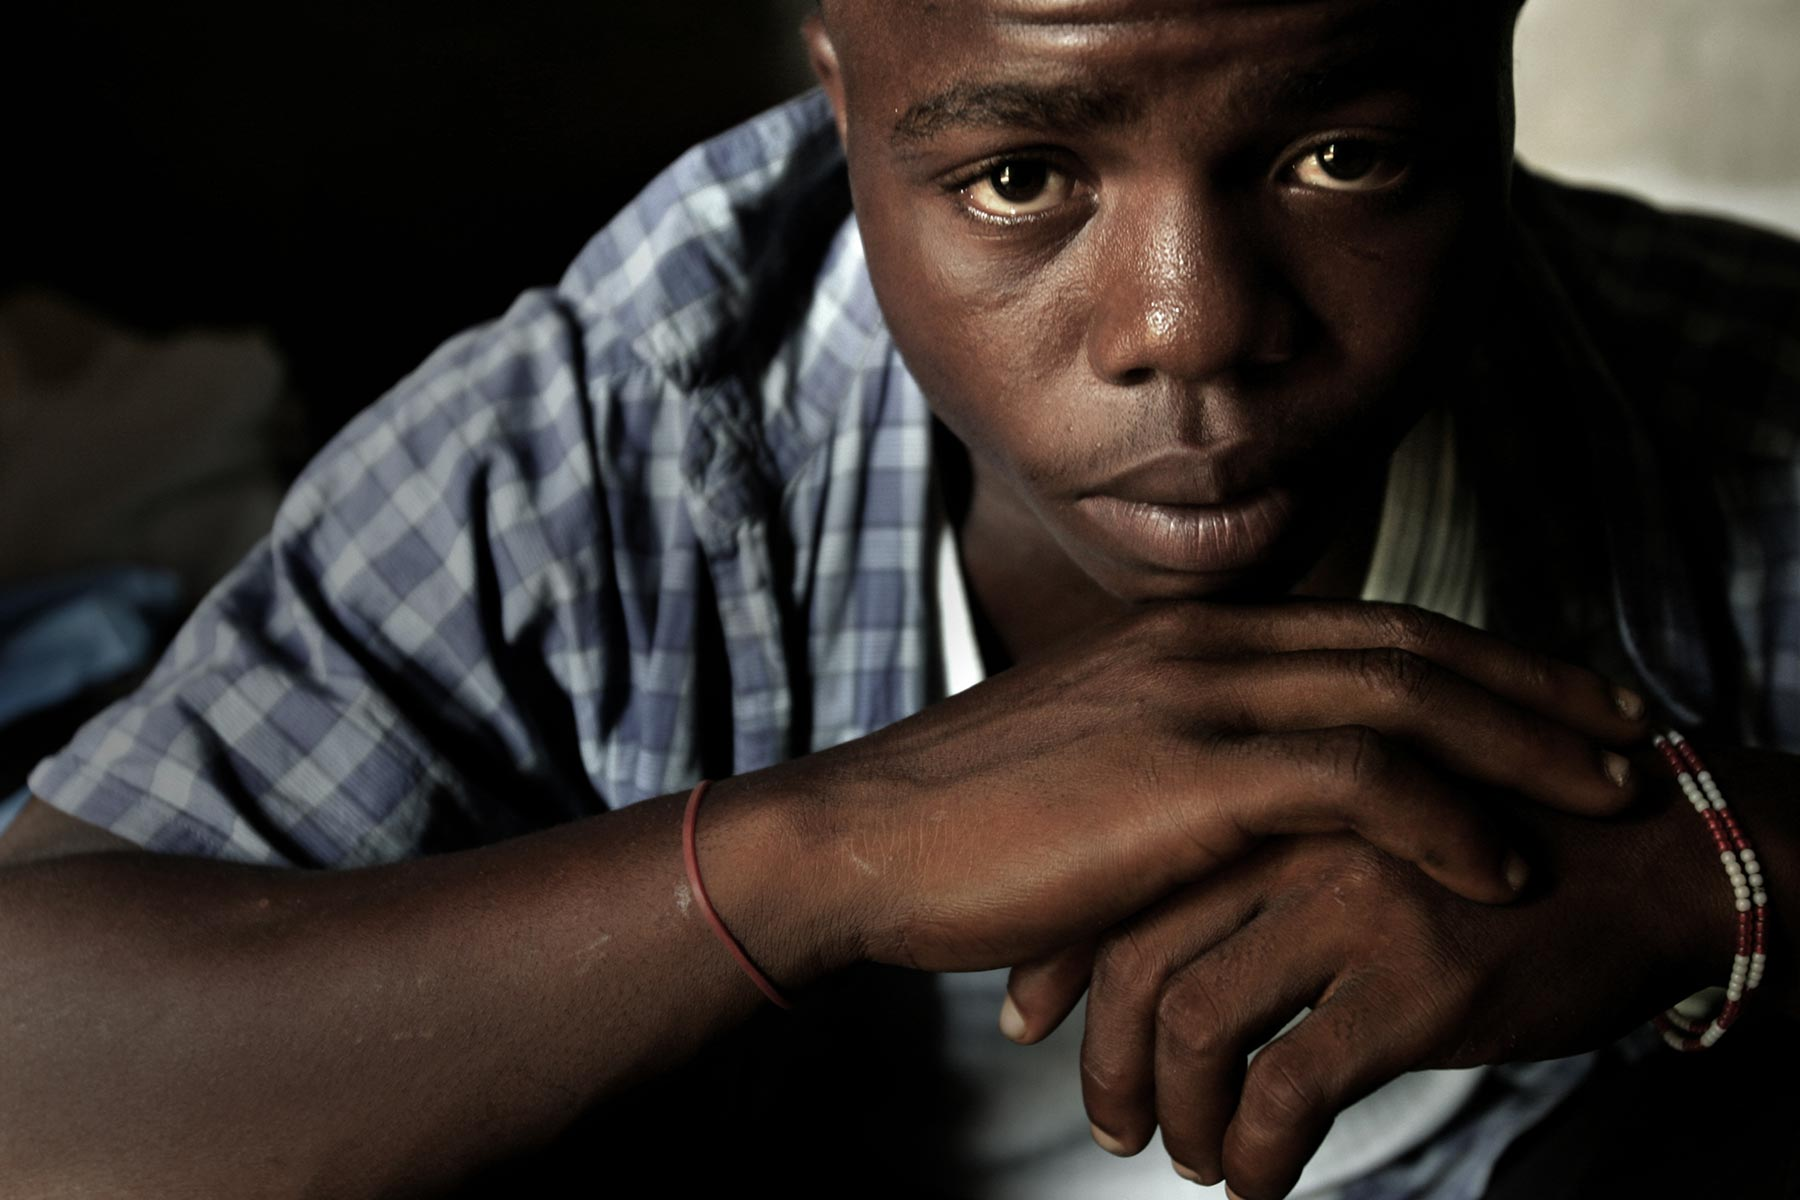 DECEMBER 1, 2006 MONROVIA, LIBERIA Former child soldier Momo Dukoe, 17, poses in Monrovia, Liberia on Dec 1, 2006. Momo, who was forcefully recruited to the government militia in his village in Lofa, northern Liberia when he was 11 years old, has fought for several years during the country's civil war which ended in Aug 2003. Photo by Kuni Takahashi